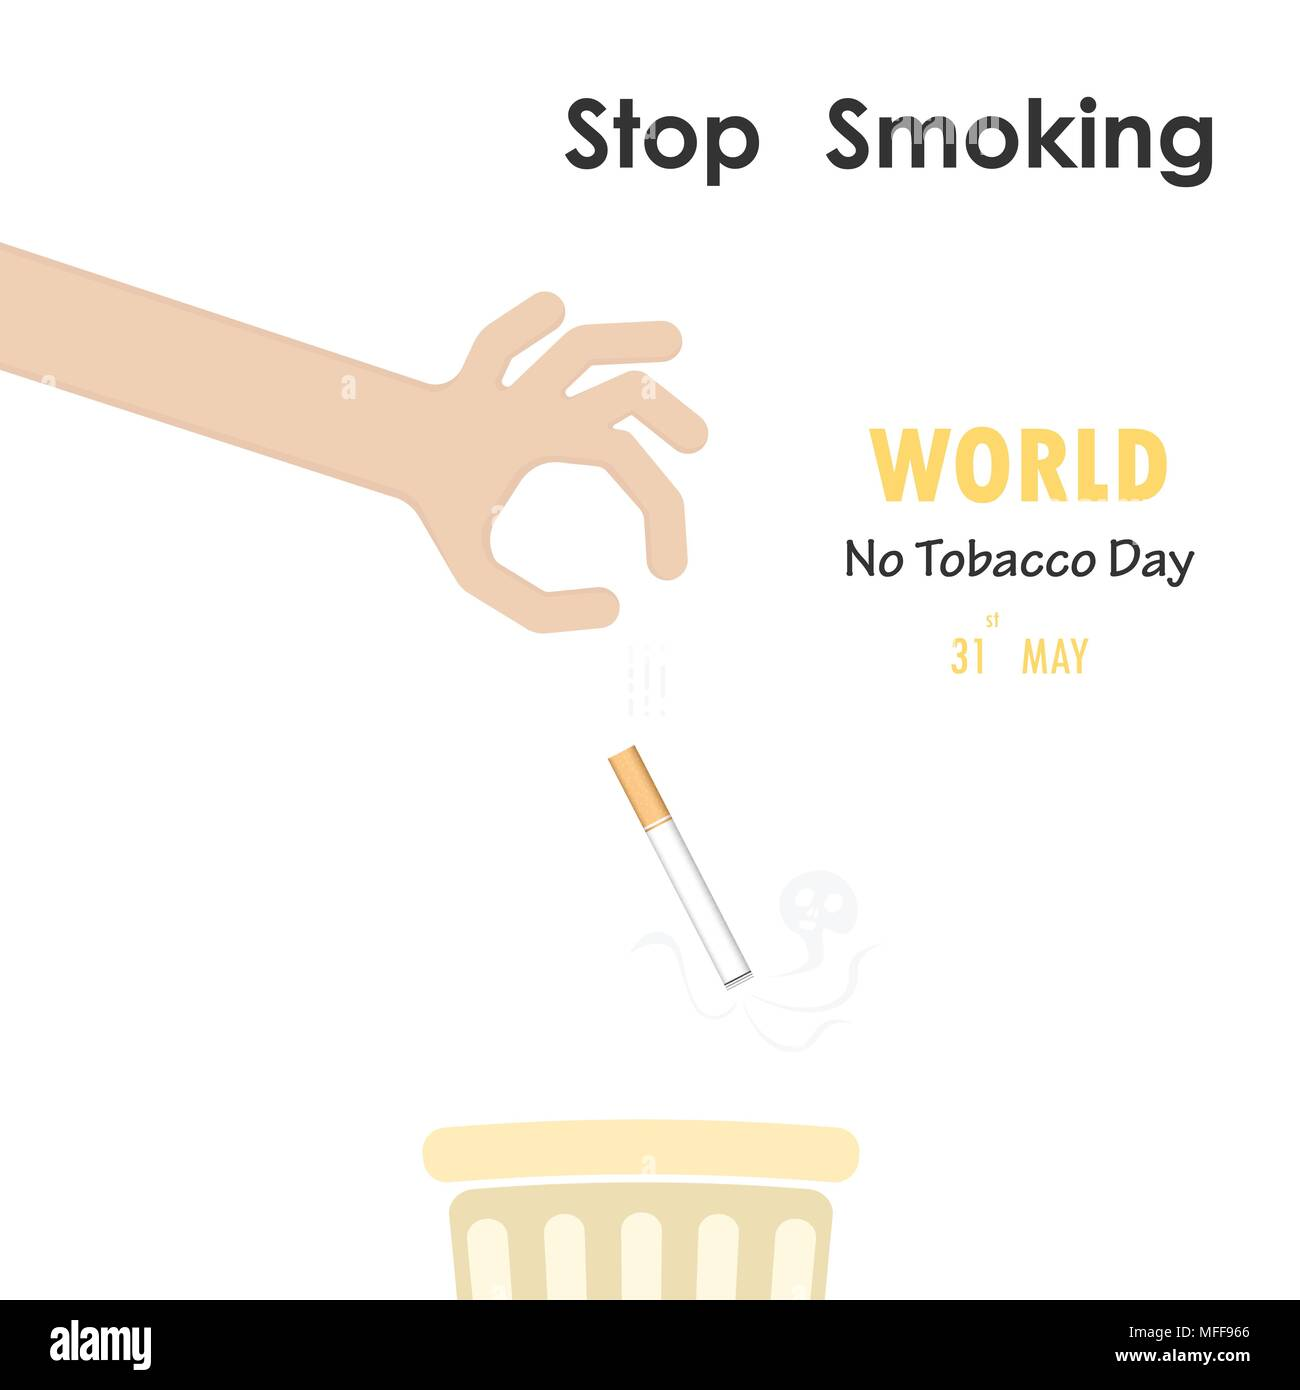 Human Hands And Quit Tobacco Vector Logo Design TemplateMay 31st World No DayNo Smoking Day Awareness Idea Campaign For Greeting CardPoster